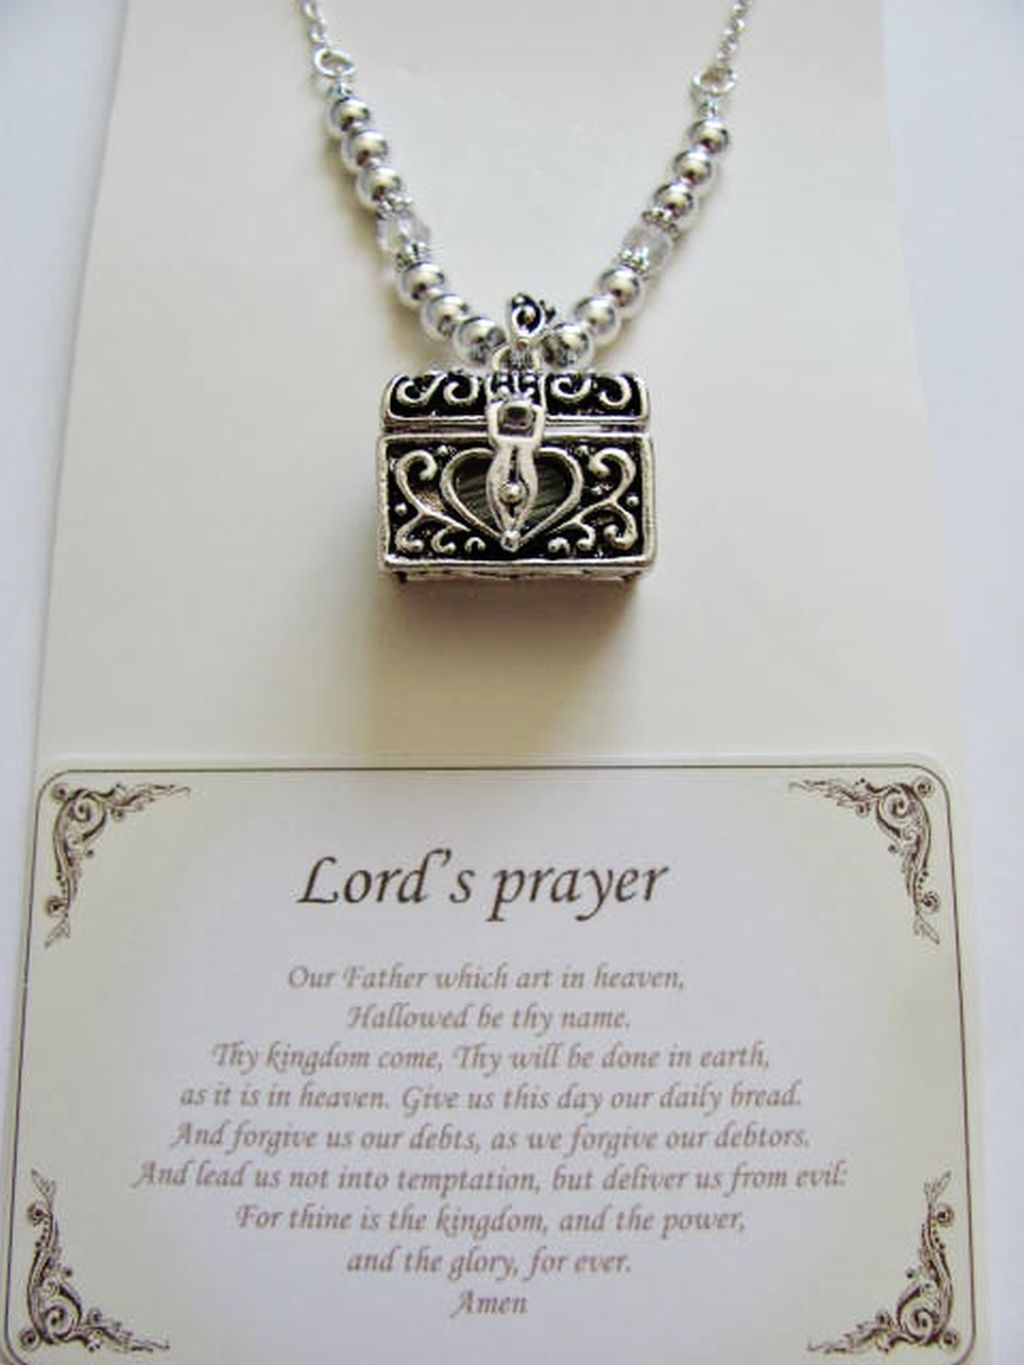 Lord's Prayer Chest Vintage Locket Necklace, Filigree Pendant w/ Inspirational Message